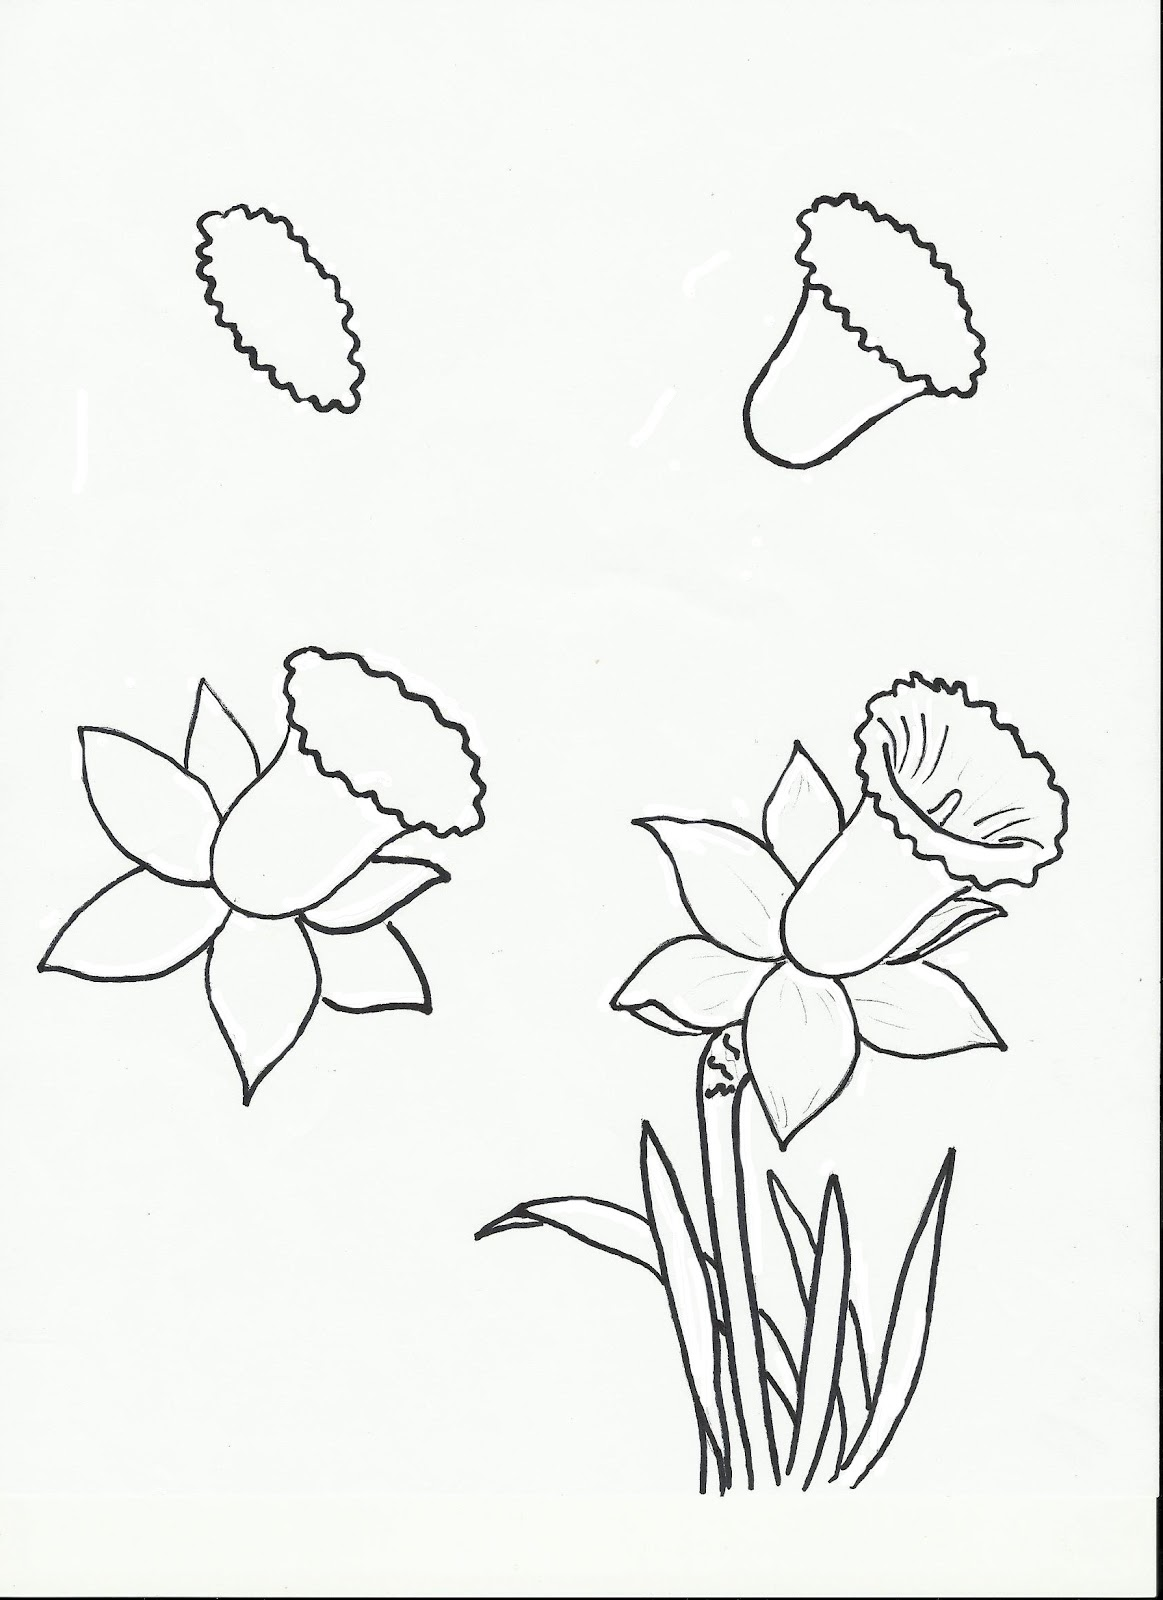 Spring drawing pictures at getdrawings free for personal use 1163x1600 flowers flowers flowers art class ideas drawing ideas mightylinksfo